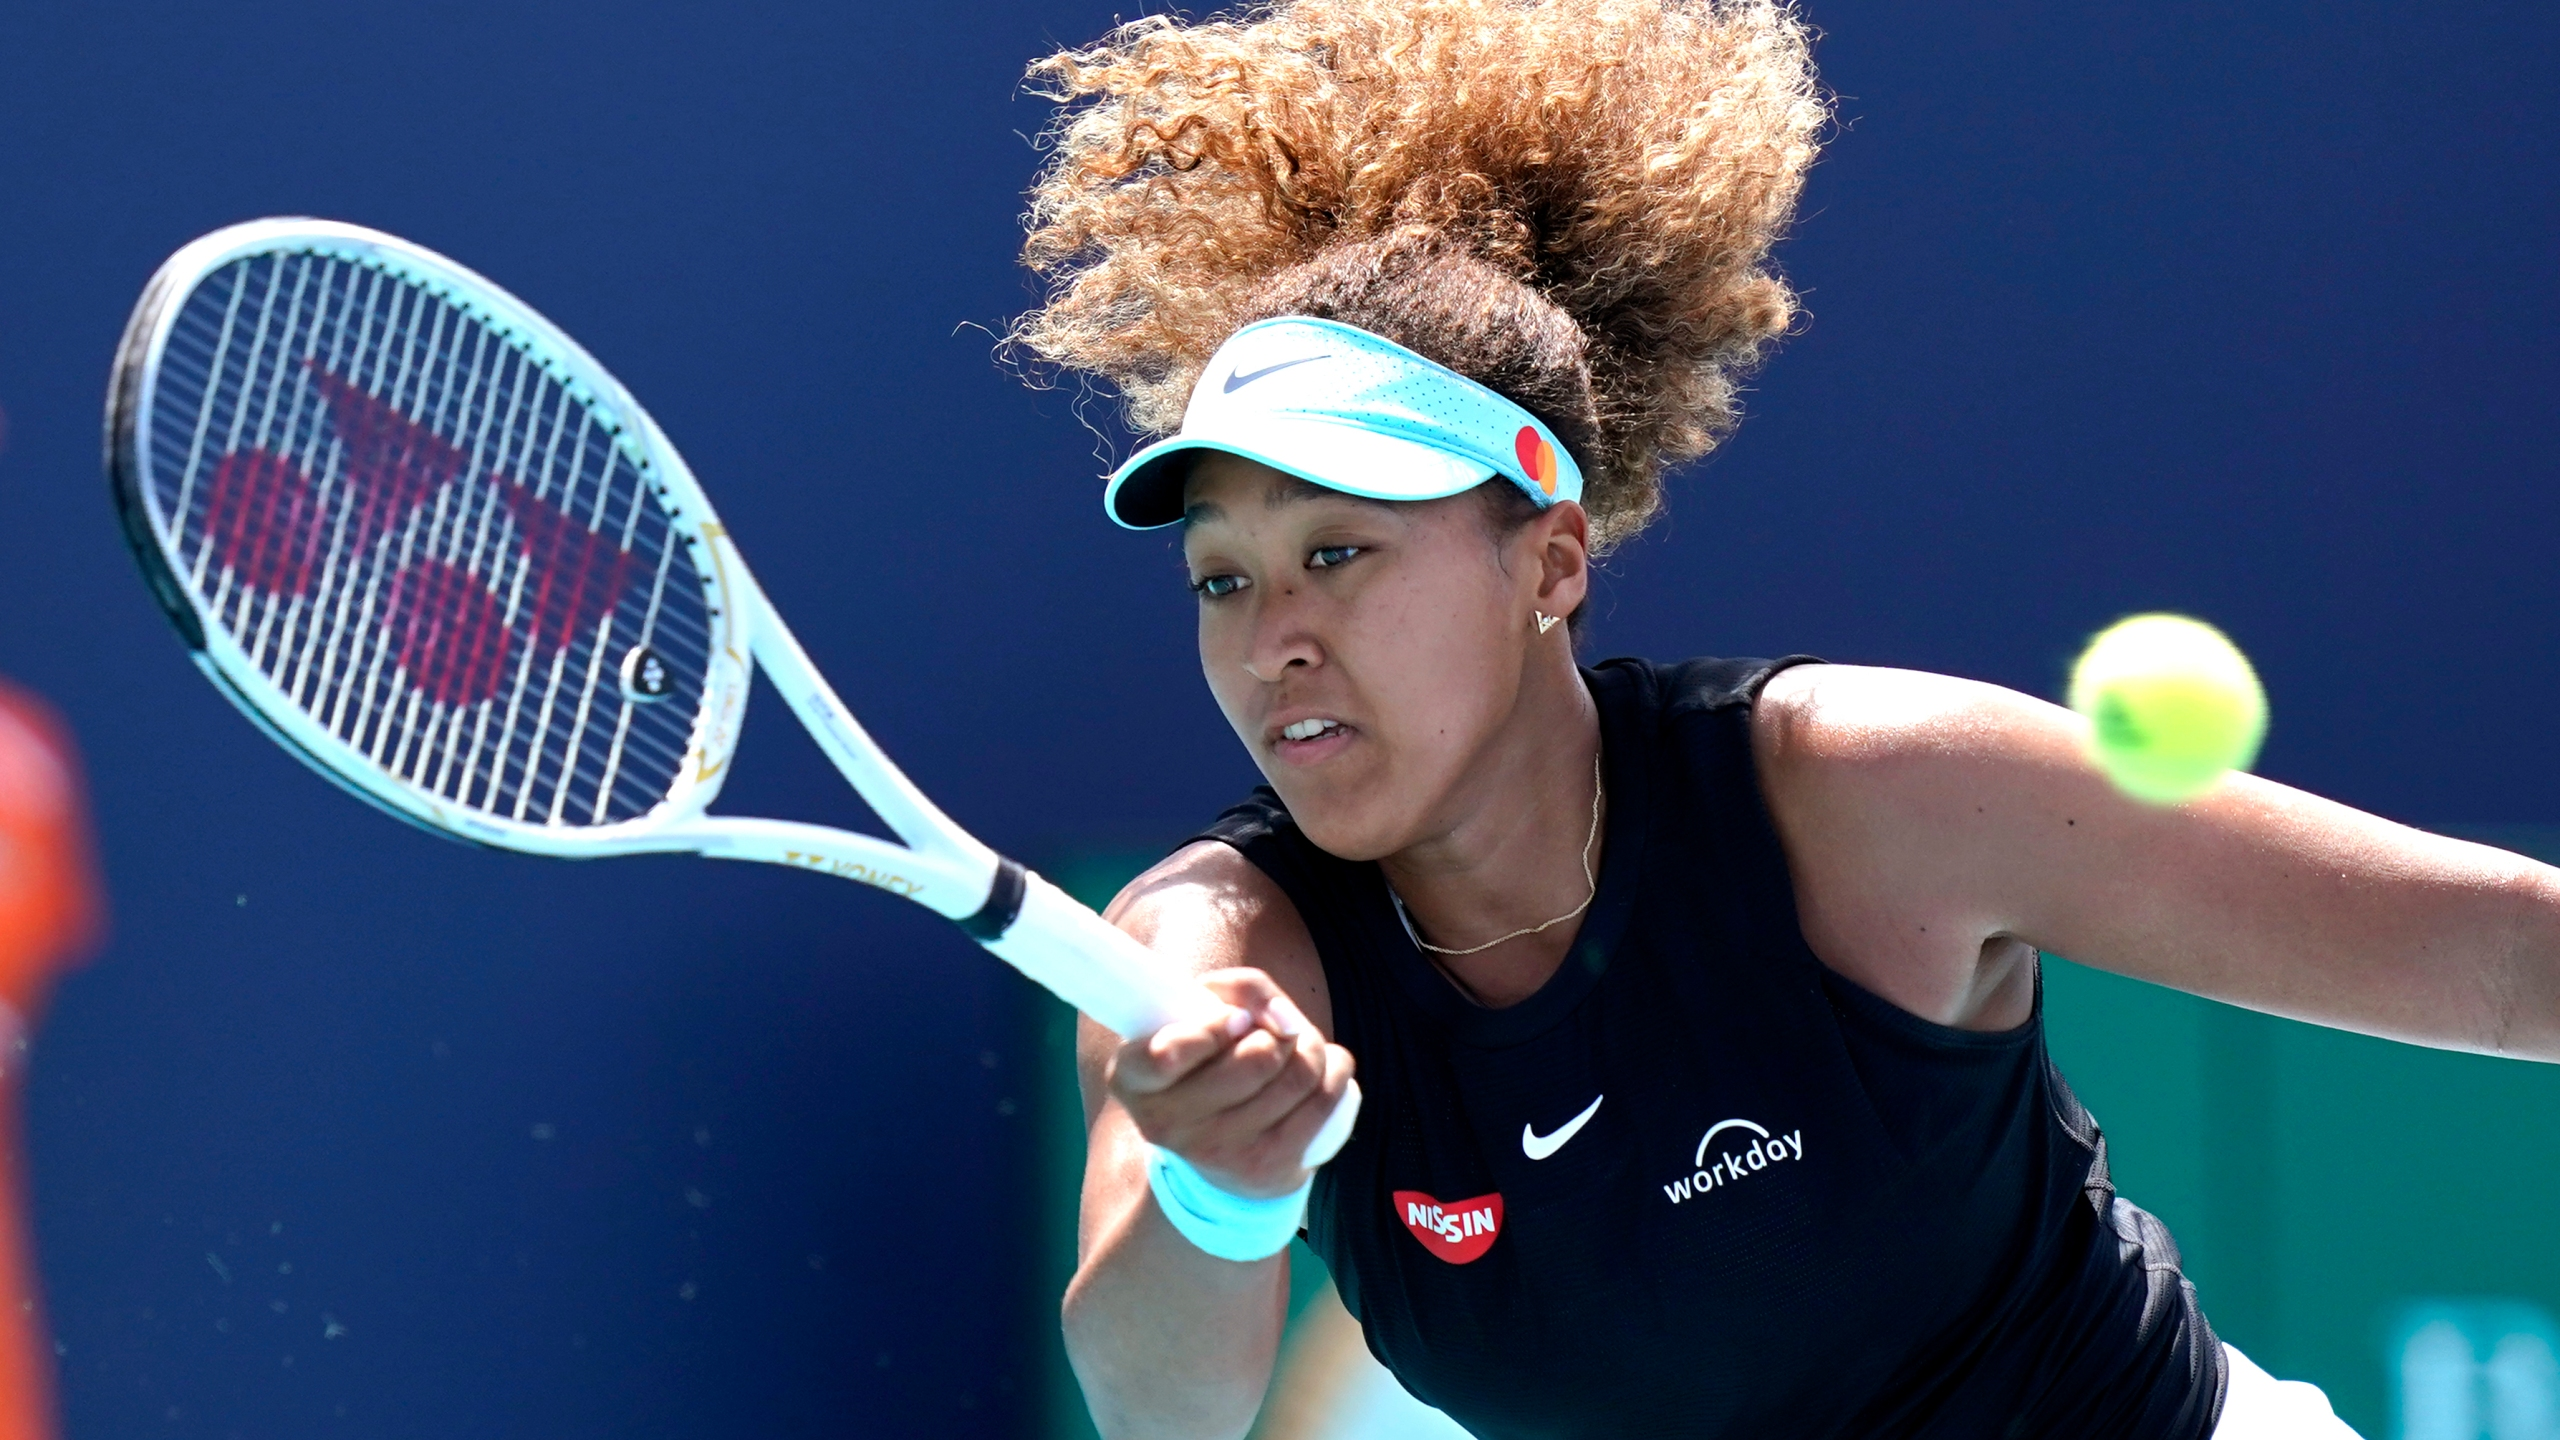 In this March 31, 2021 file photo, Naomi Osaka, of Japan, returns to Maria Sakkari, of Greece, during the quarterfinals of the Miami Open tennis tournament in Miami Gardens, Fla. Sponsors of Osaka are sticking by the her after she withdrew from the French Open, citing mental health issues relating to the press conferences required for players. Osaka, a four-time Grand Slam champion, said Monday, May 31, she was withdrawing from the French Open for mental health issues. (AP Photo/Lynne Sladky, File)